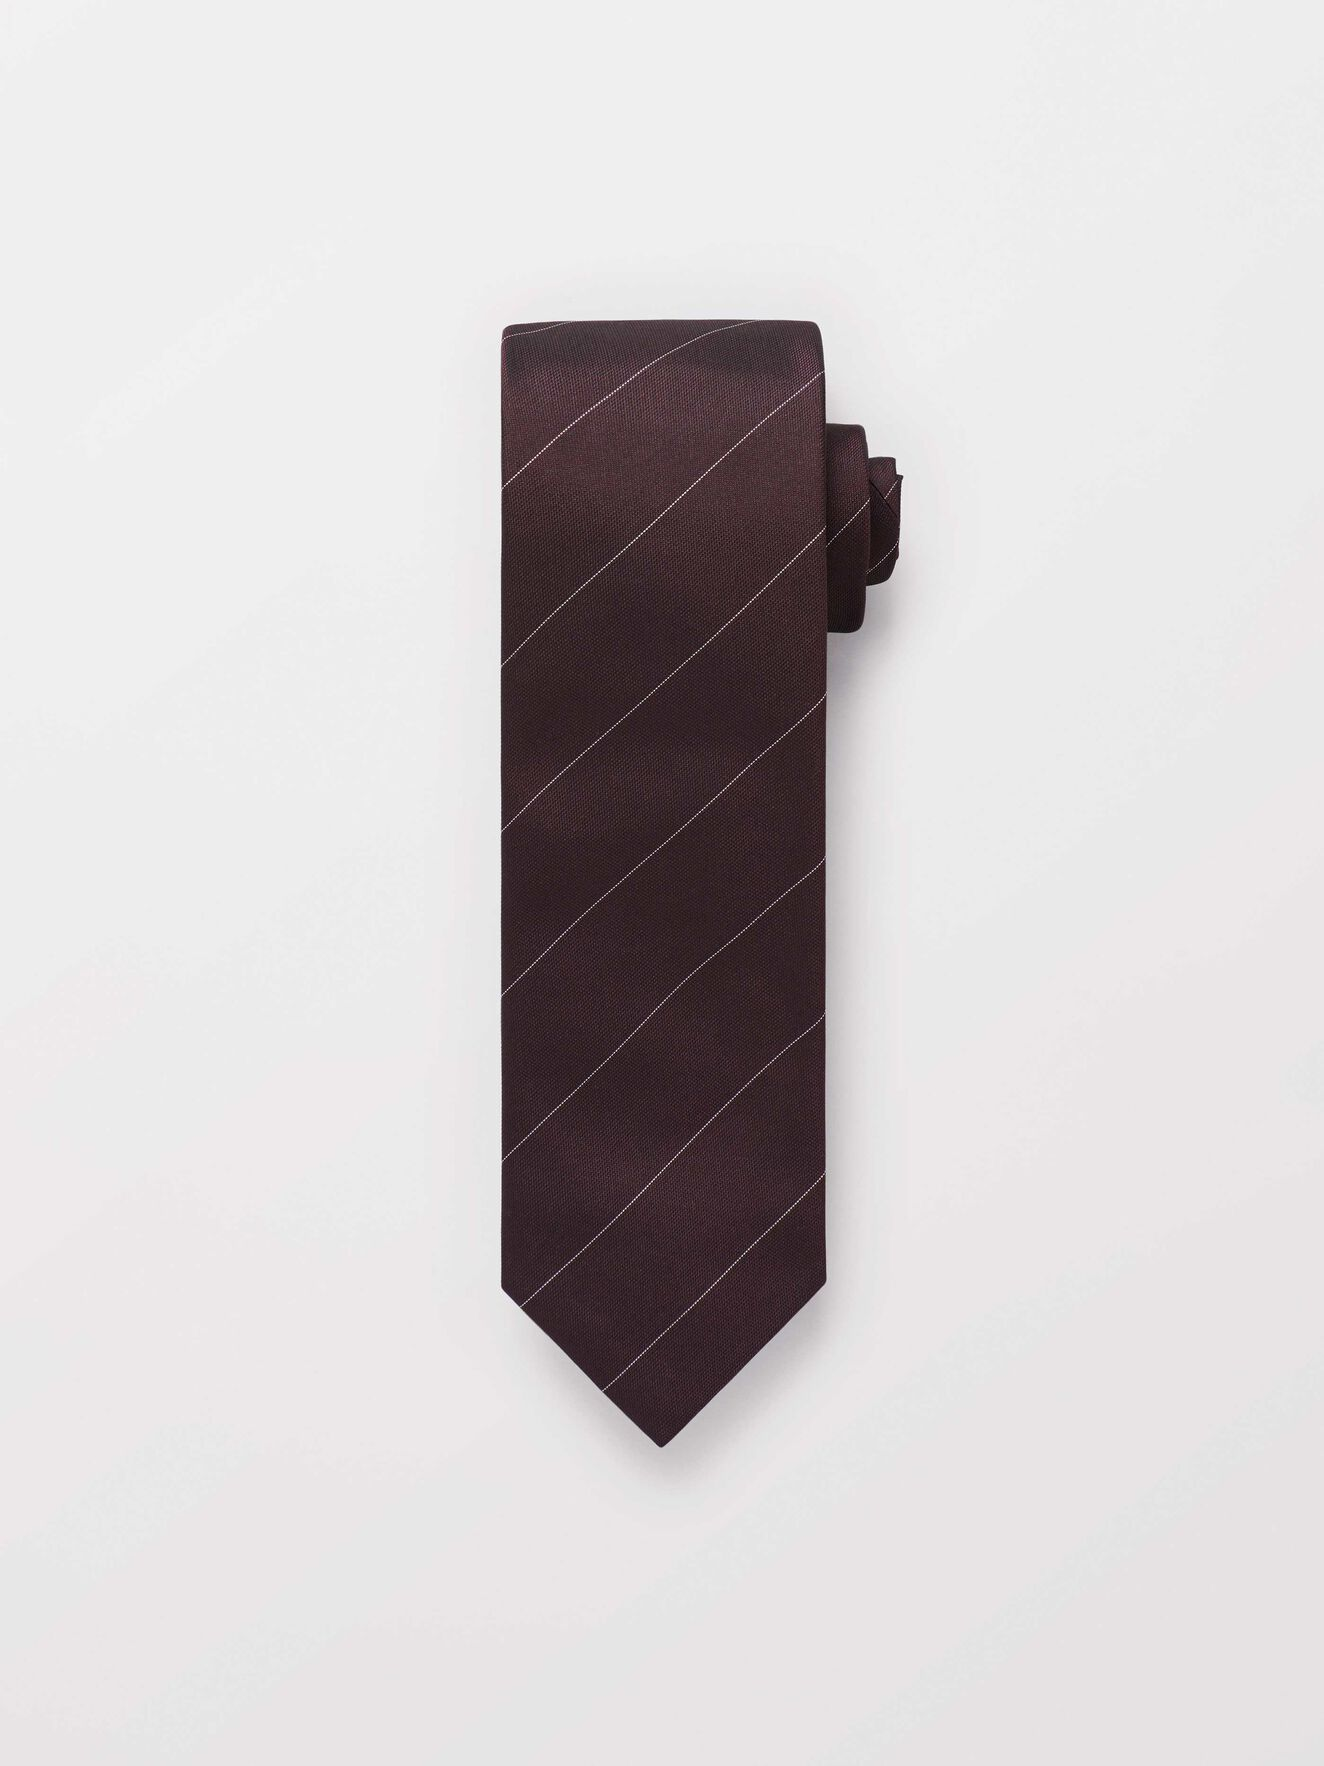 Tannant  Tie in Noon Plum from Tiger of Sweden